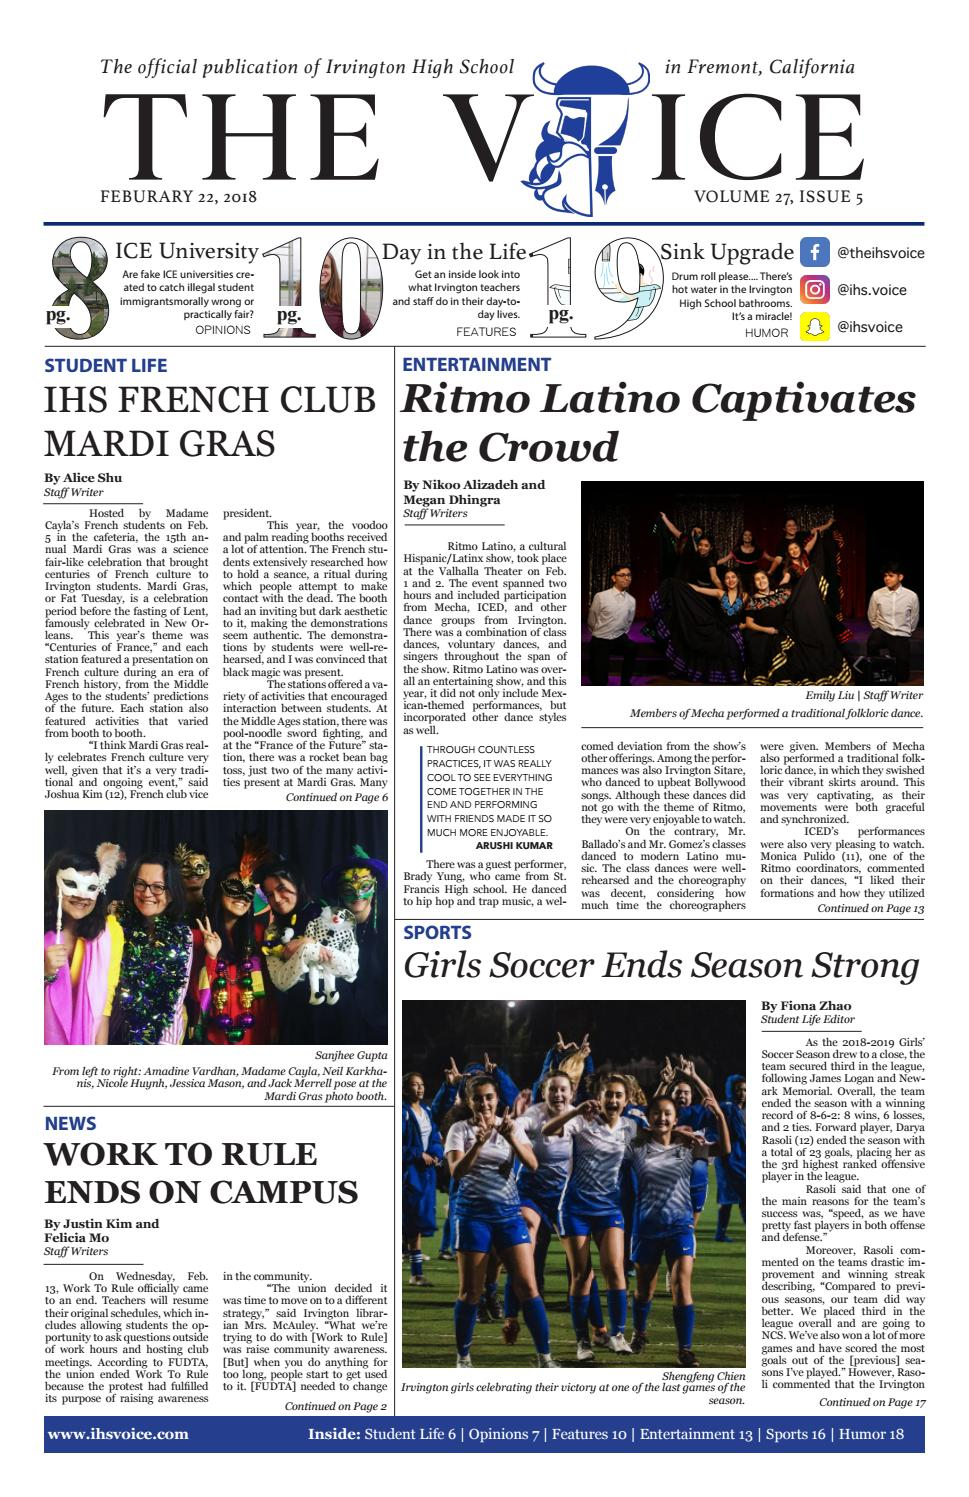 The Irvington Voice 27 5 by The Irvington Voice - issuu